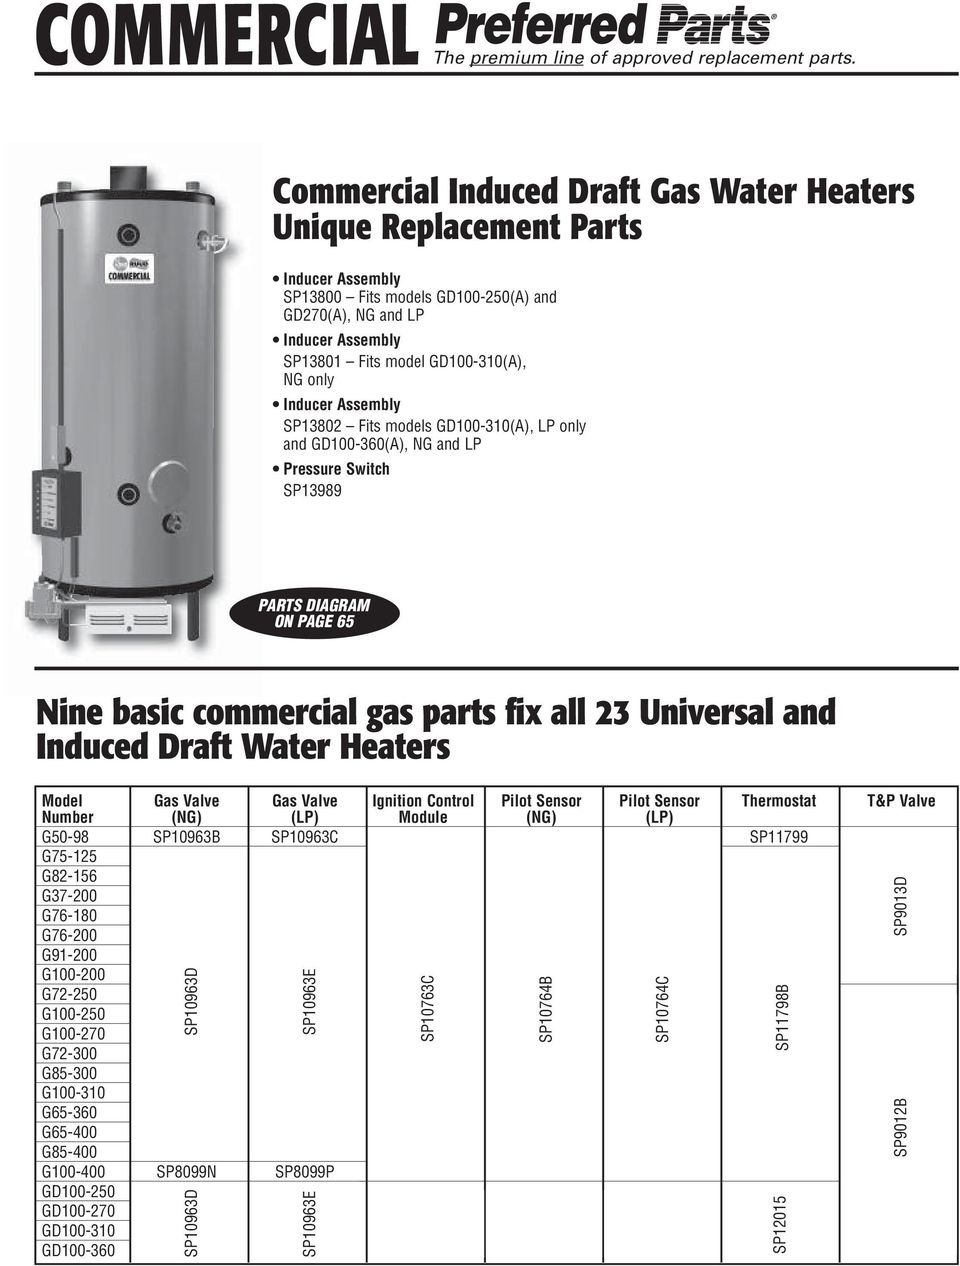 Rheem Water Heater Parts Guide Pdf Honda Pilot Replacement Motor Repalcement And Diagram Inducer Assembly Sp13802 Fits Models Gd100 310a Lp Only 20 Commercial The Premium Line Of Approved